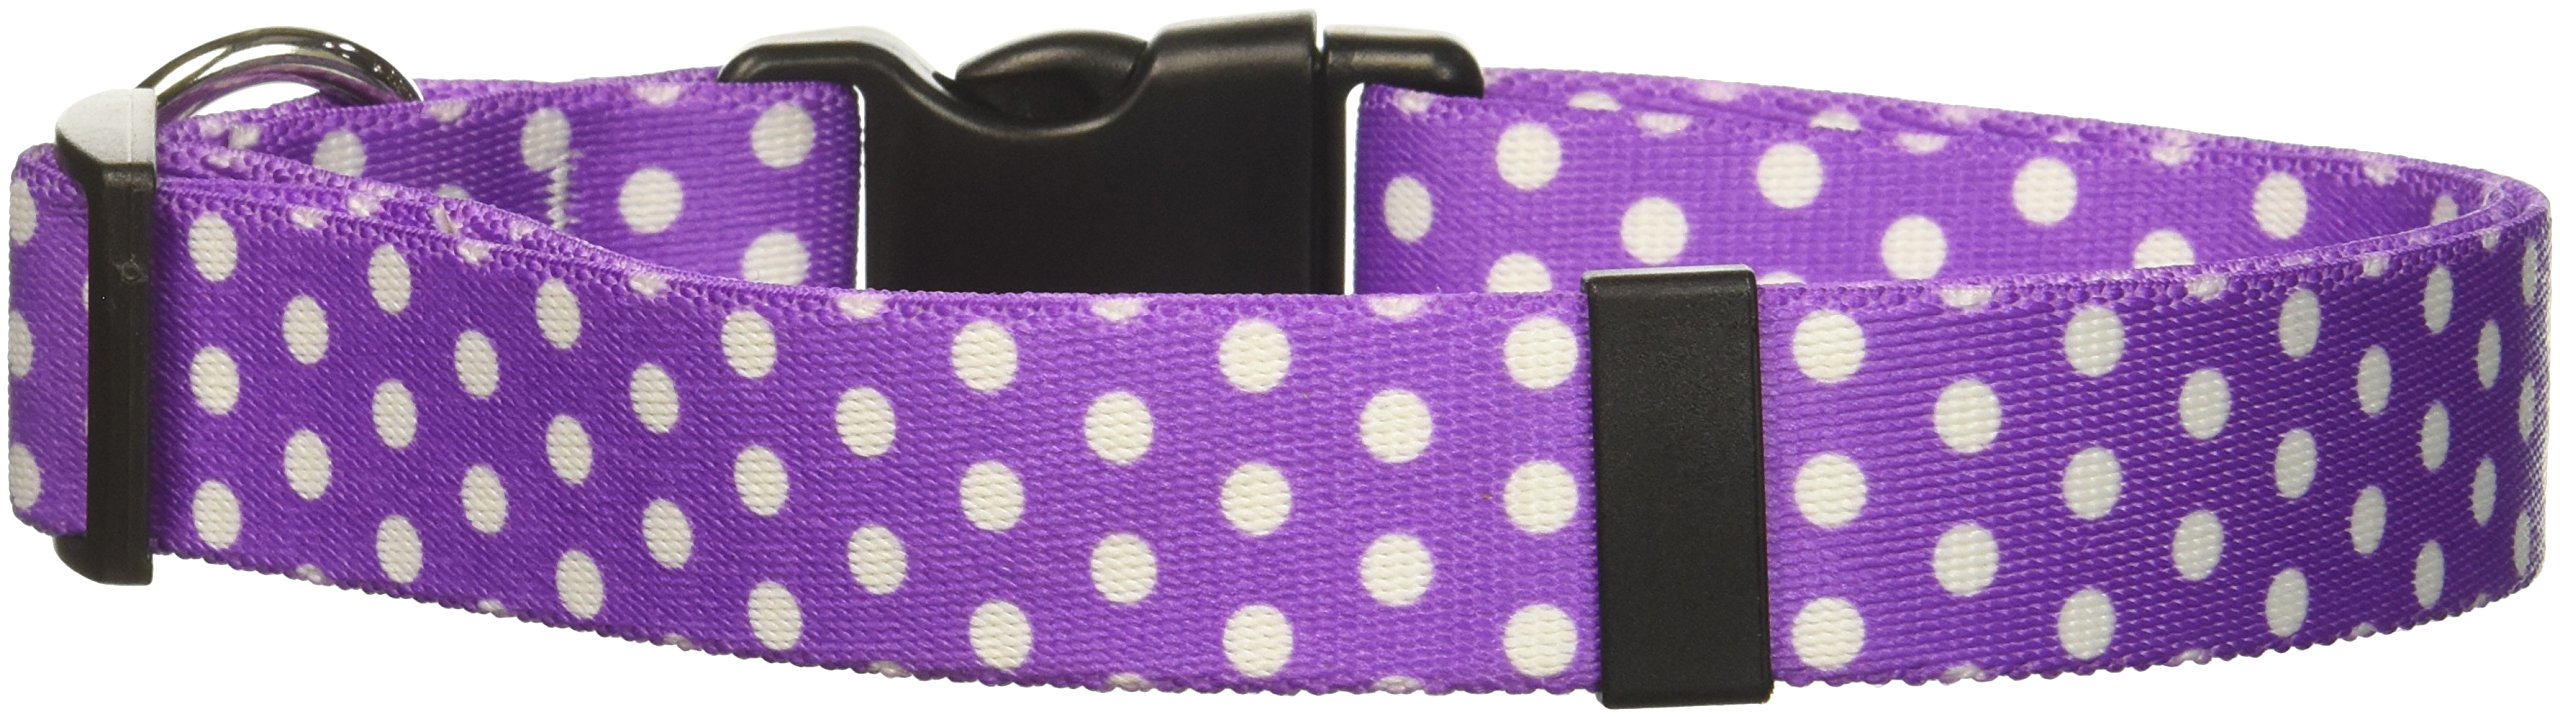 Yellow Dog Design Standard Easy-Snap Collar, New Purple Polka Dot, Large 18'' - 28''